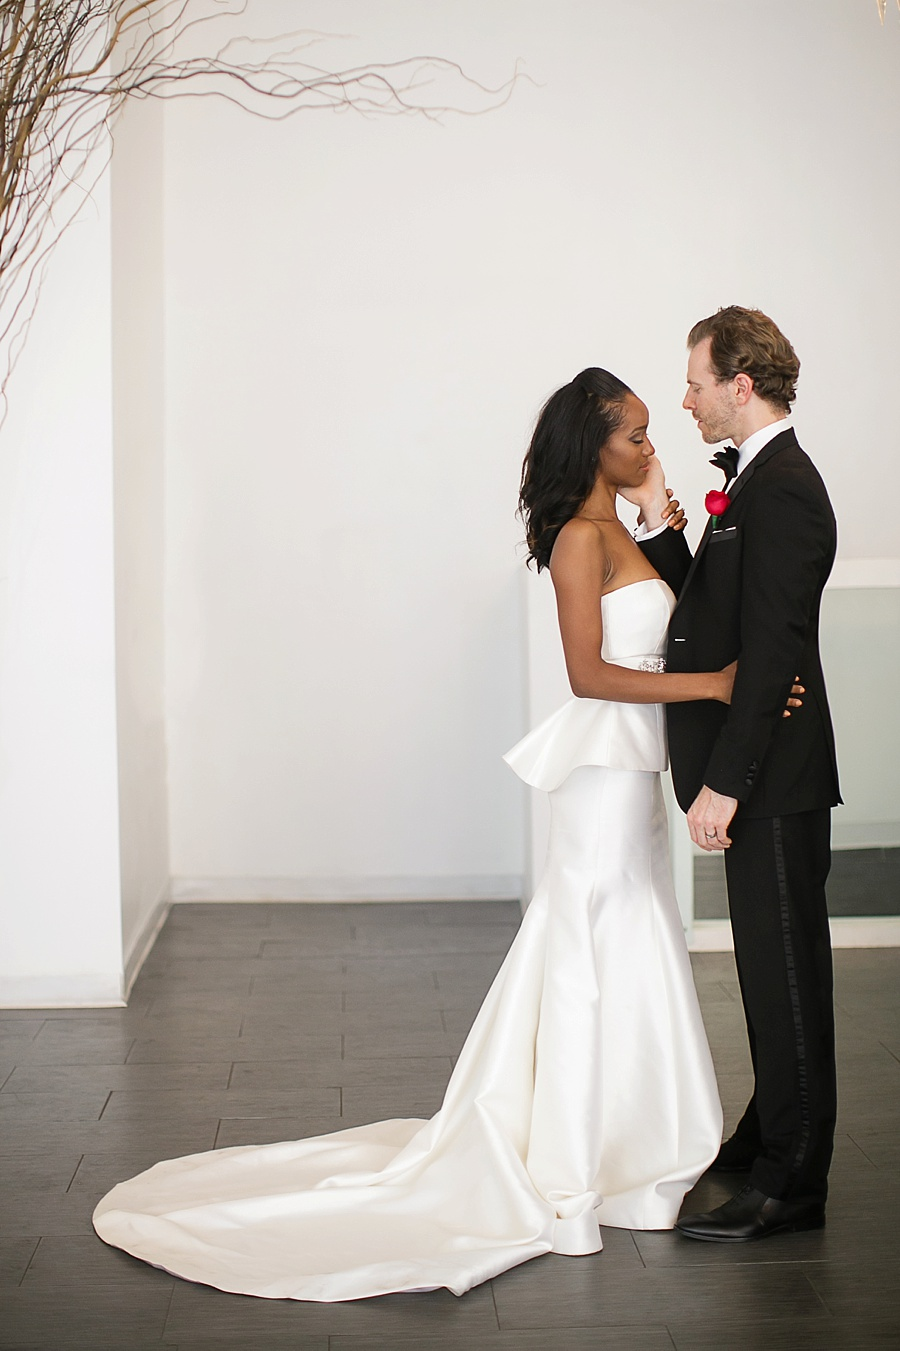 Scandal Olivia Pope and Fitz Wedding- By petronella7